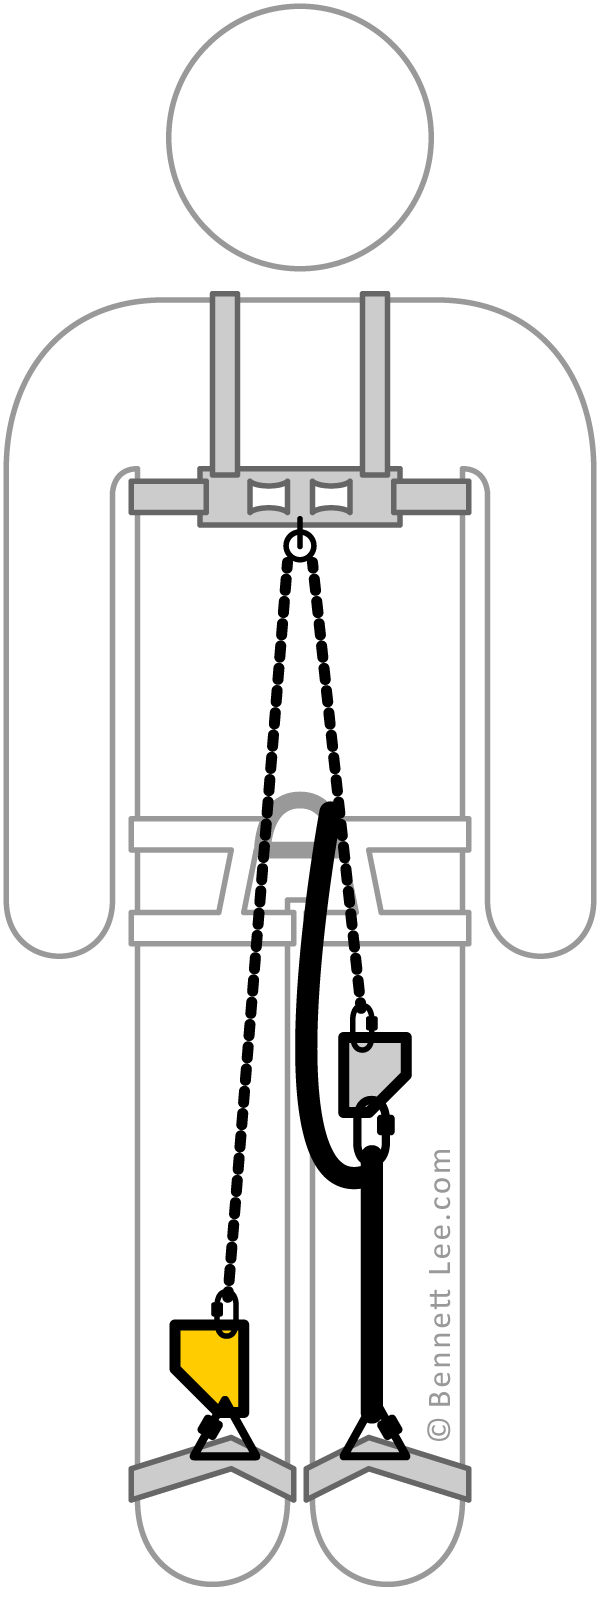 Rope Walker Ascending System